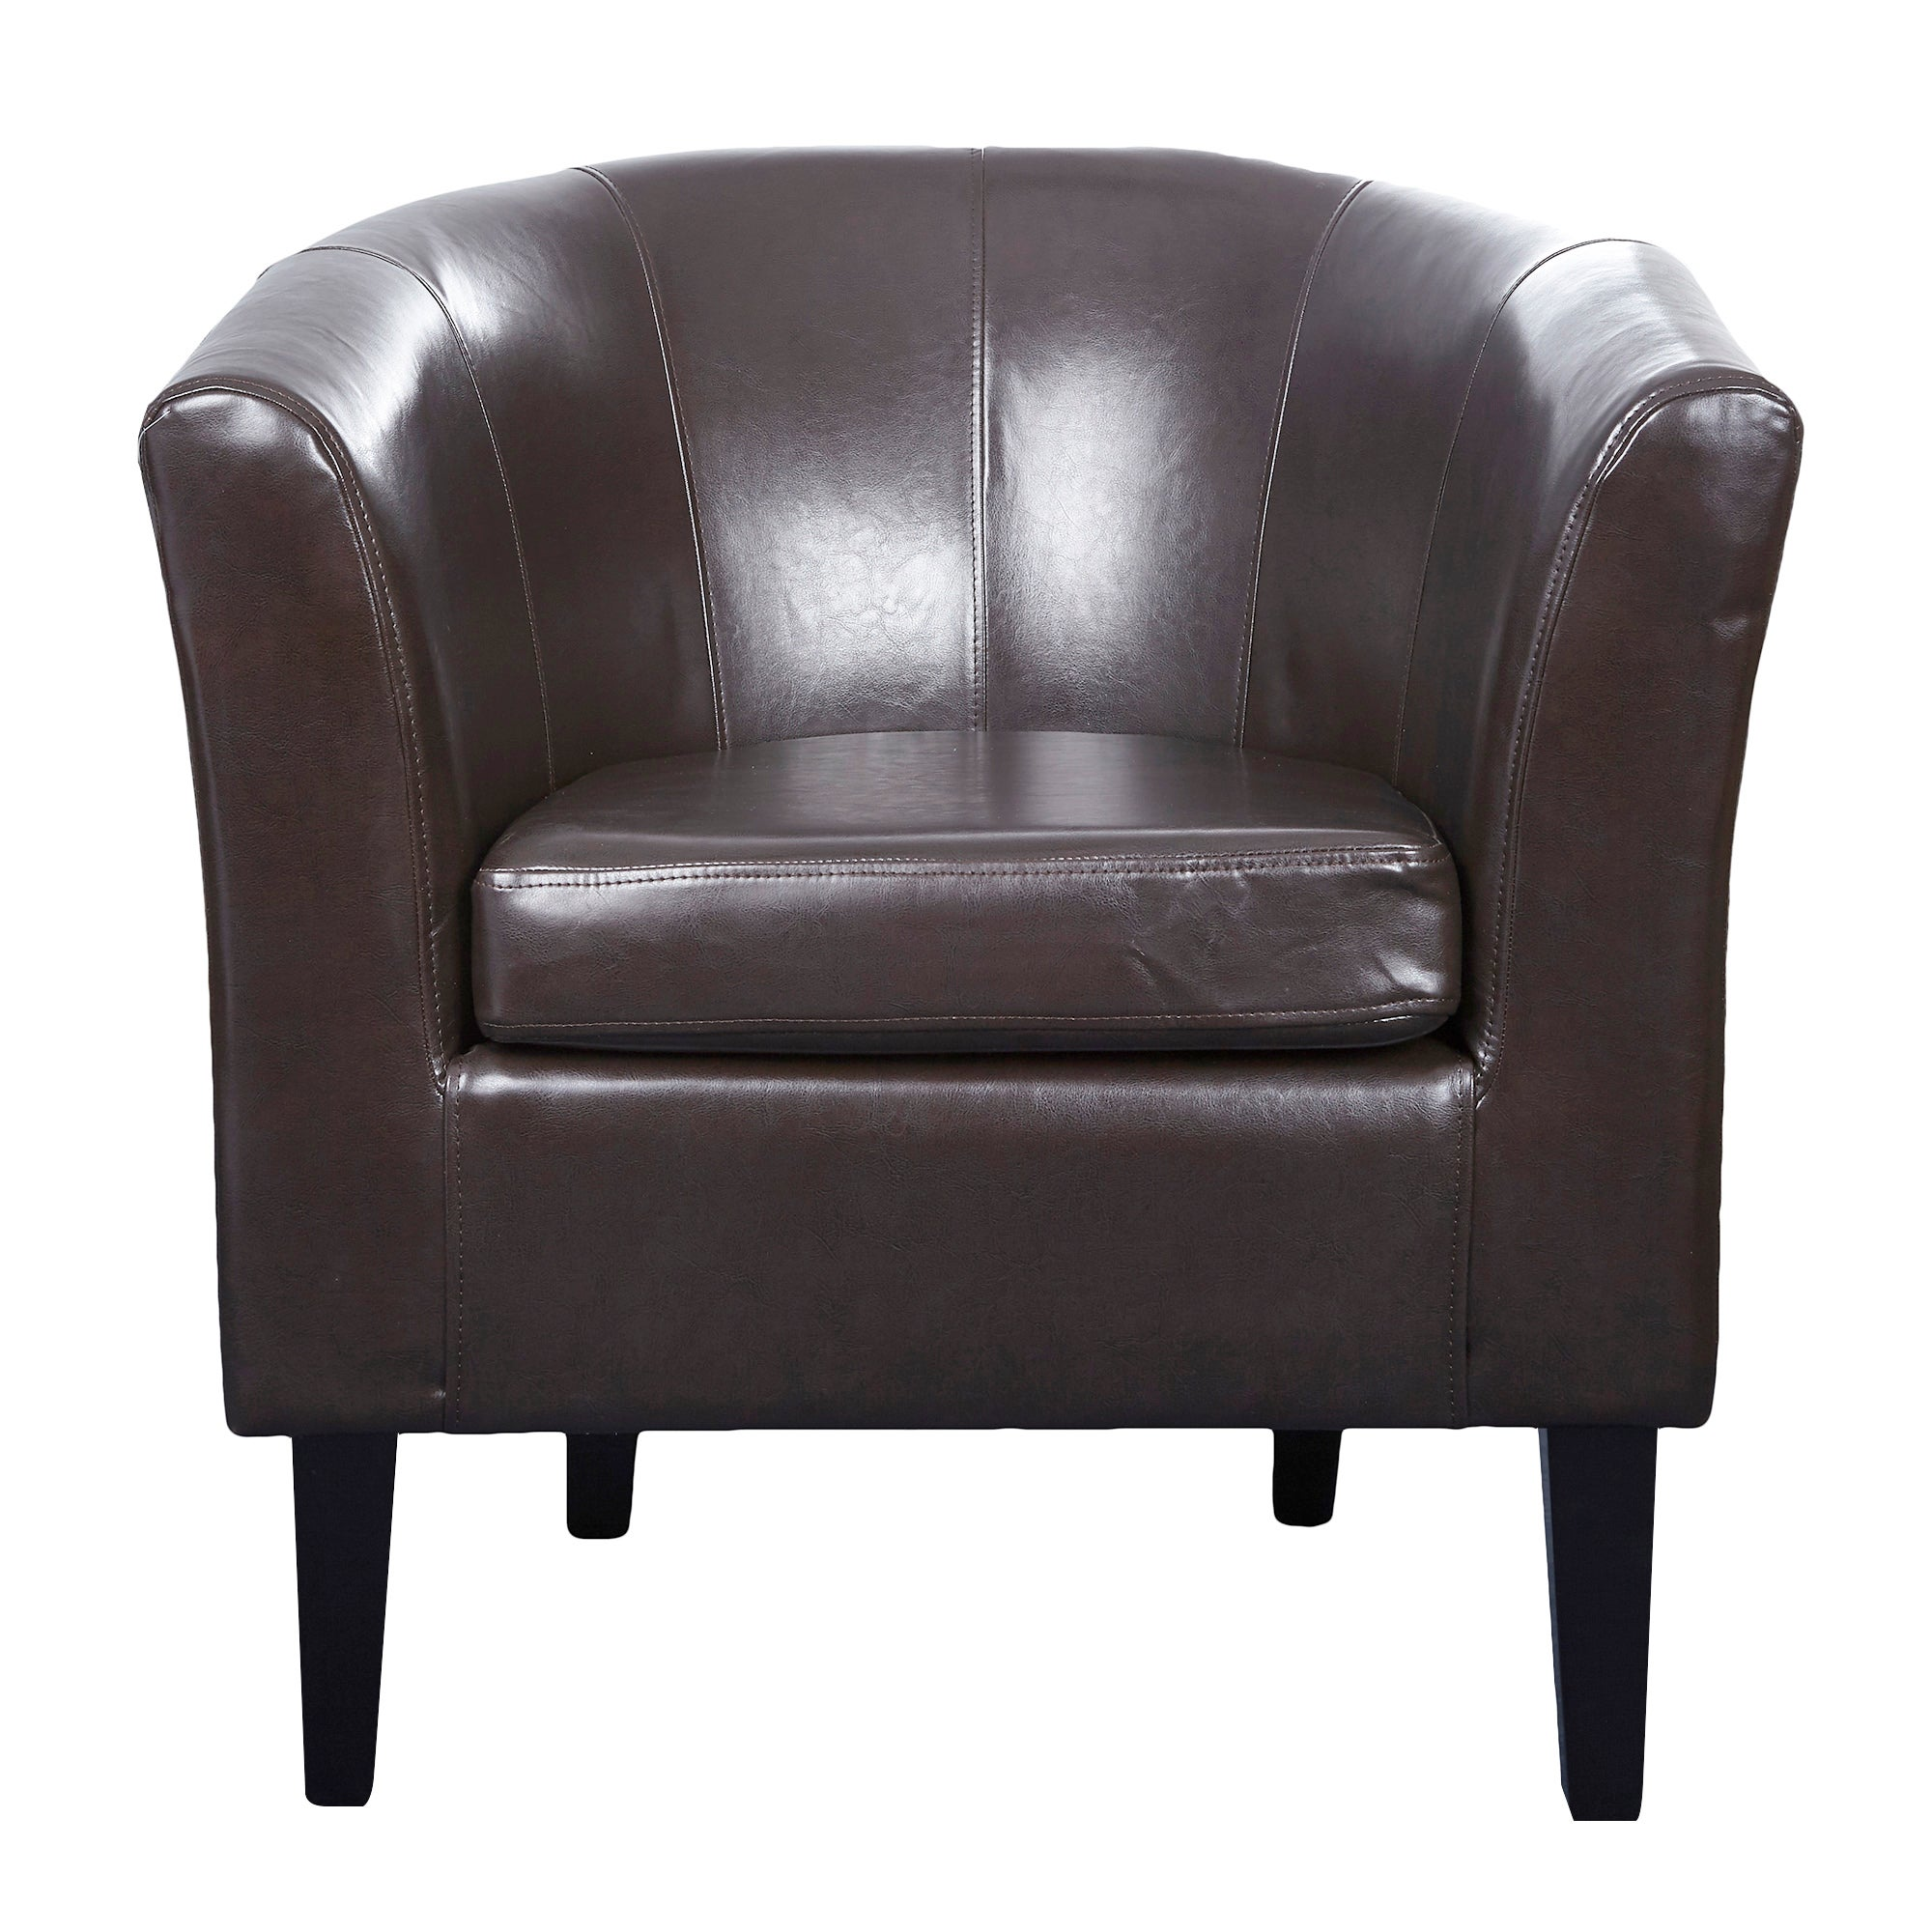 buy cheap tub chair cover compare sofas prices for best. Black Bedroom Furniture Sets. Home Design Ideas